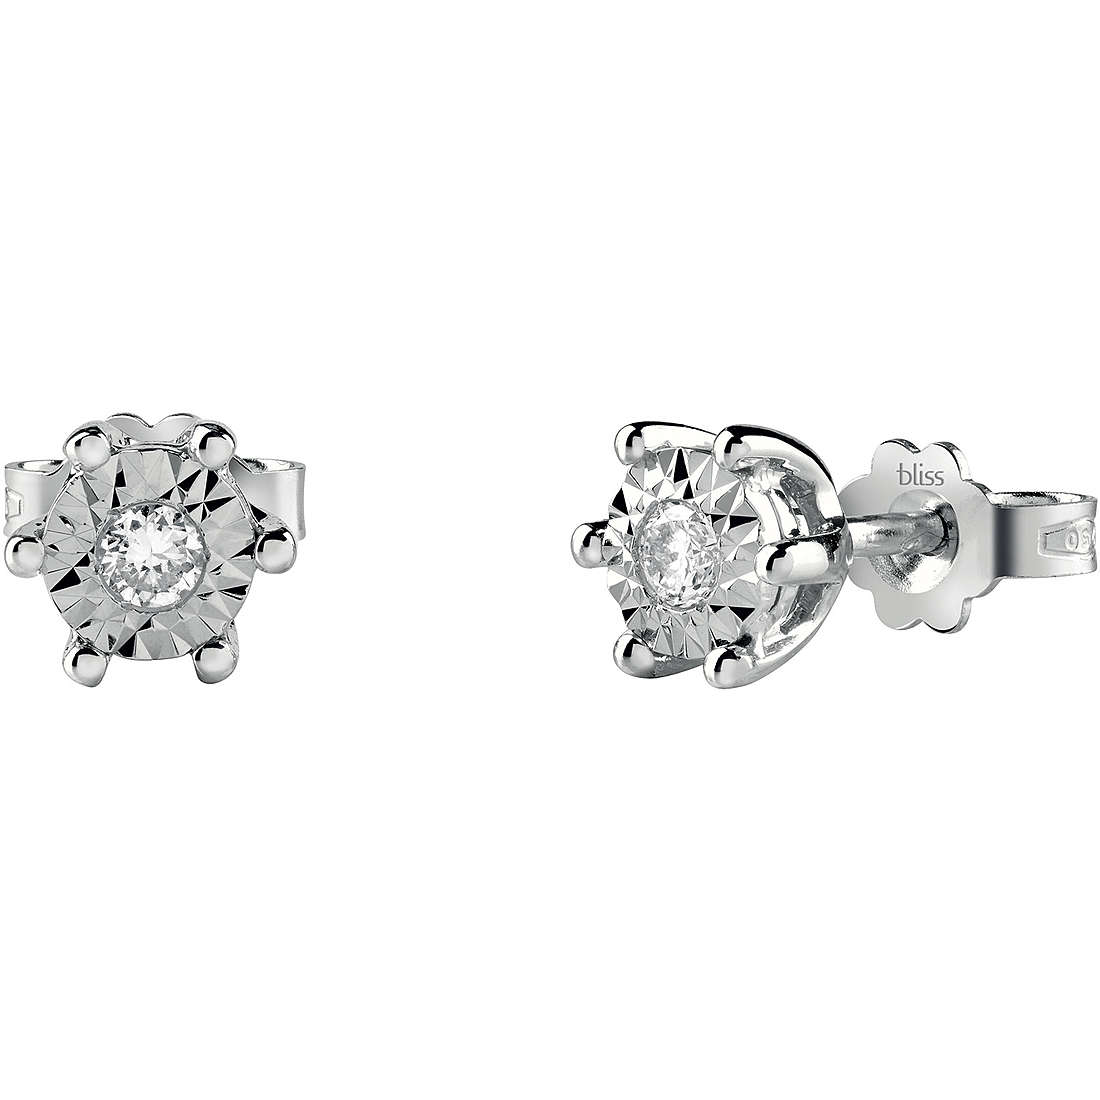 Bliss Earrings point light in white gold and diamonds ct 0,06 Ref. 20082837